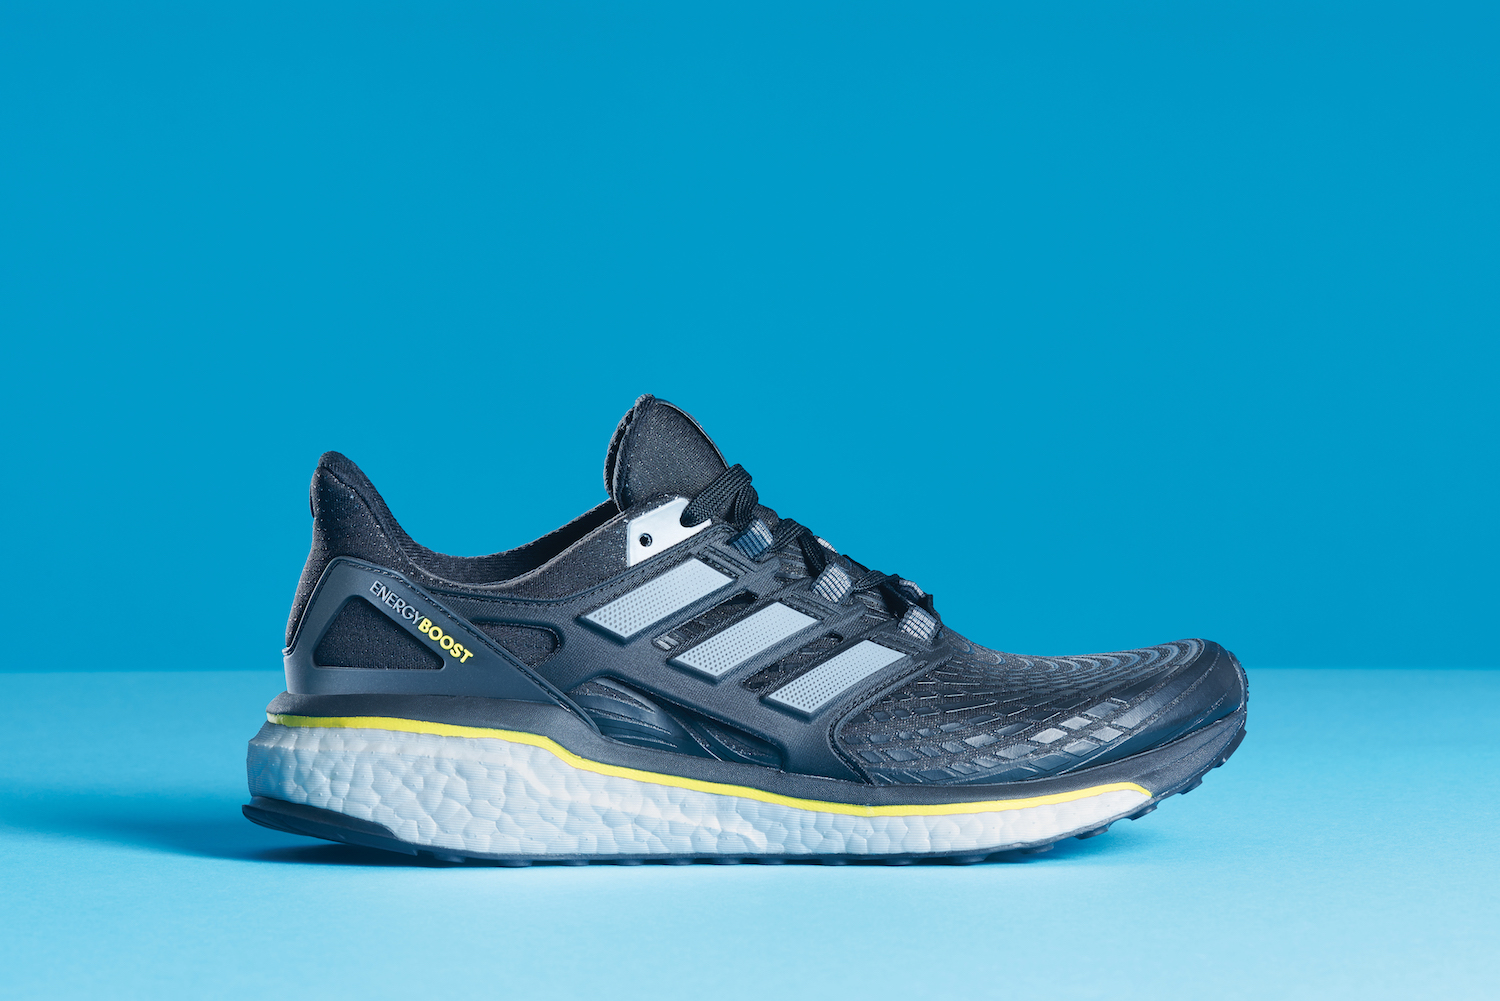 ADIDAS ULTRA BOOST 4.0 5th ANNIVERSARY REVIEW YouTube